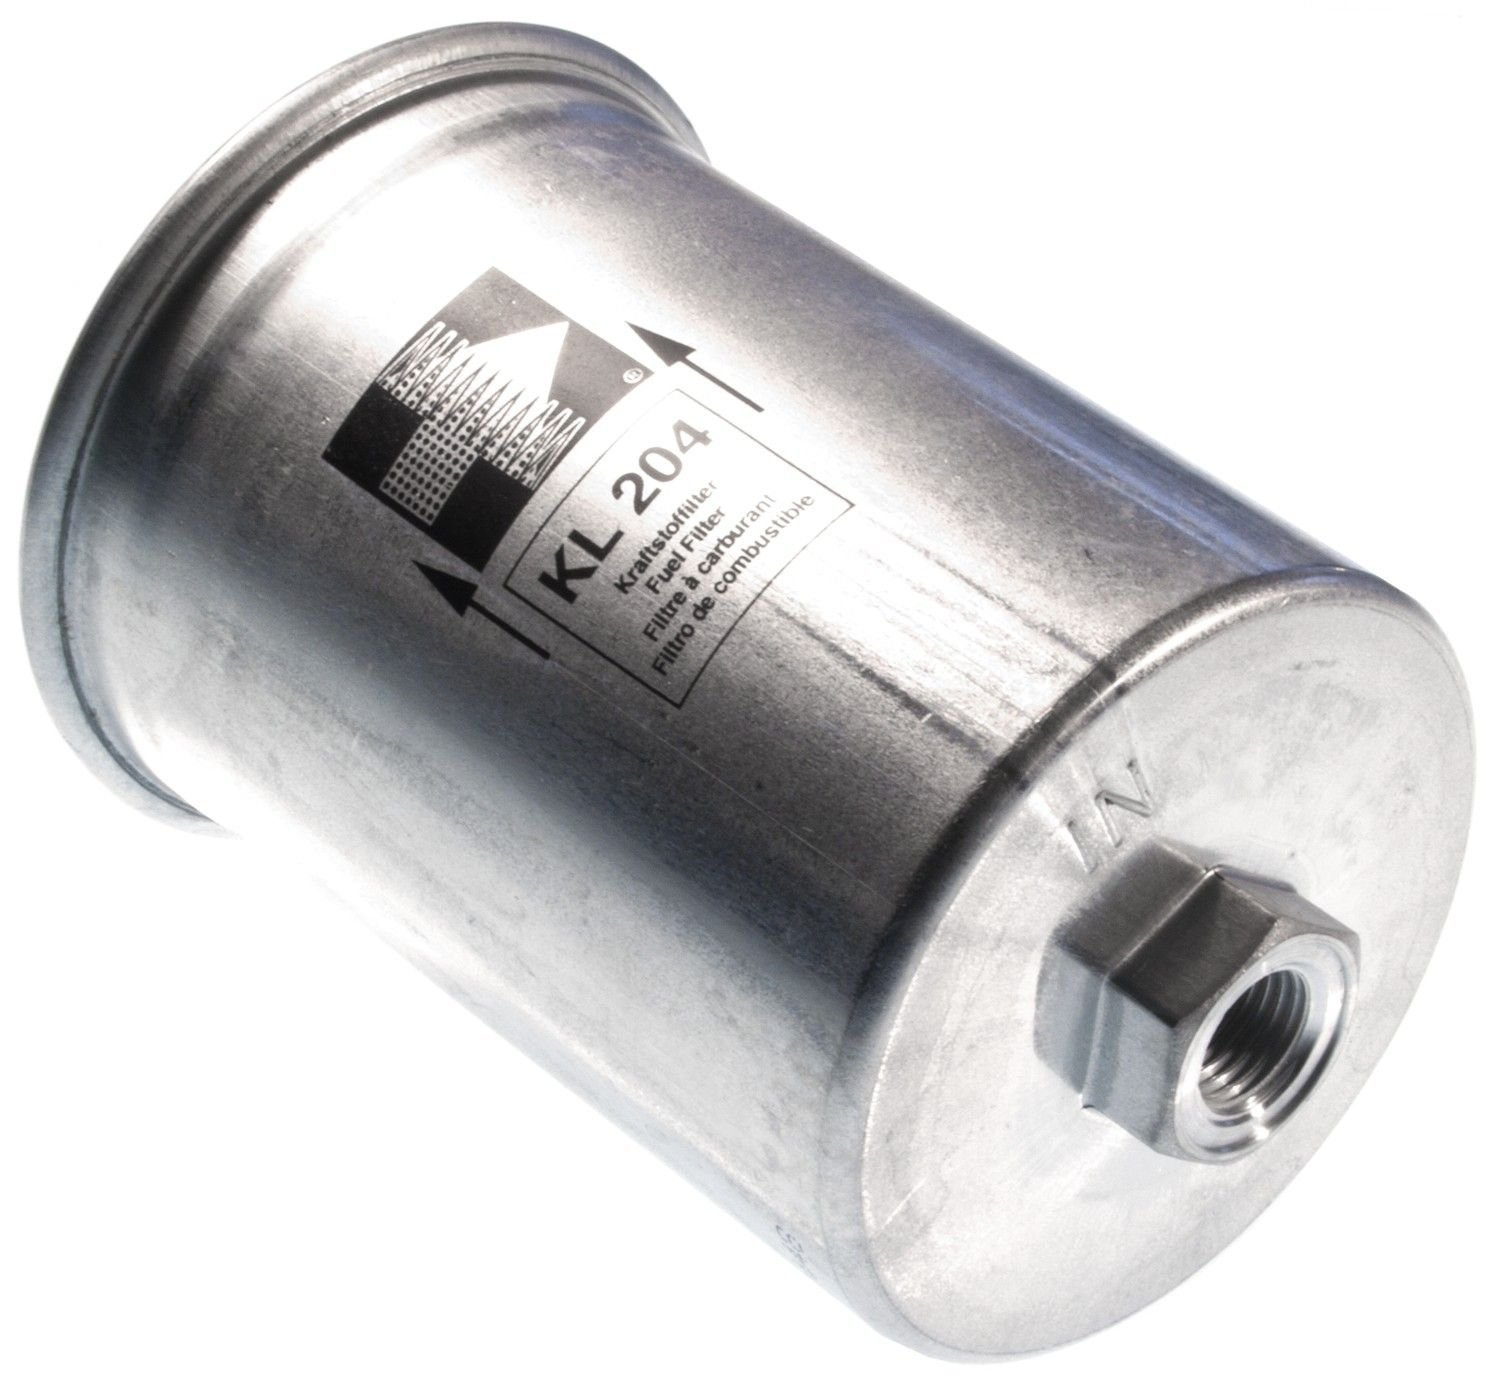 Audi 90 Fuel Filter Replacement Beck Arnley Fram Hastings Hengst 1994 In Line 6 Cyl 28l Mahle Kl 204 Type